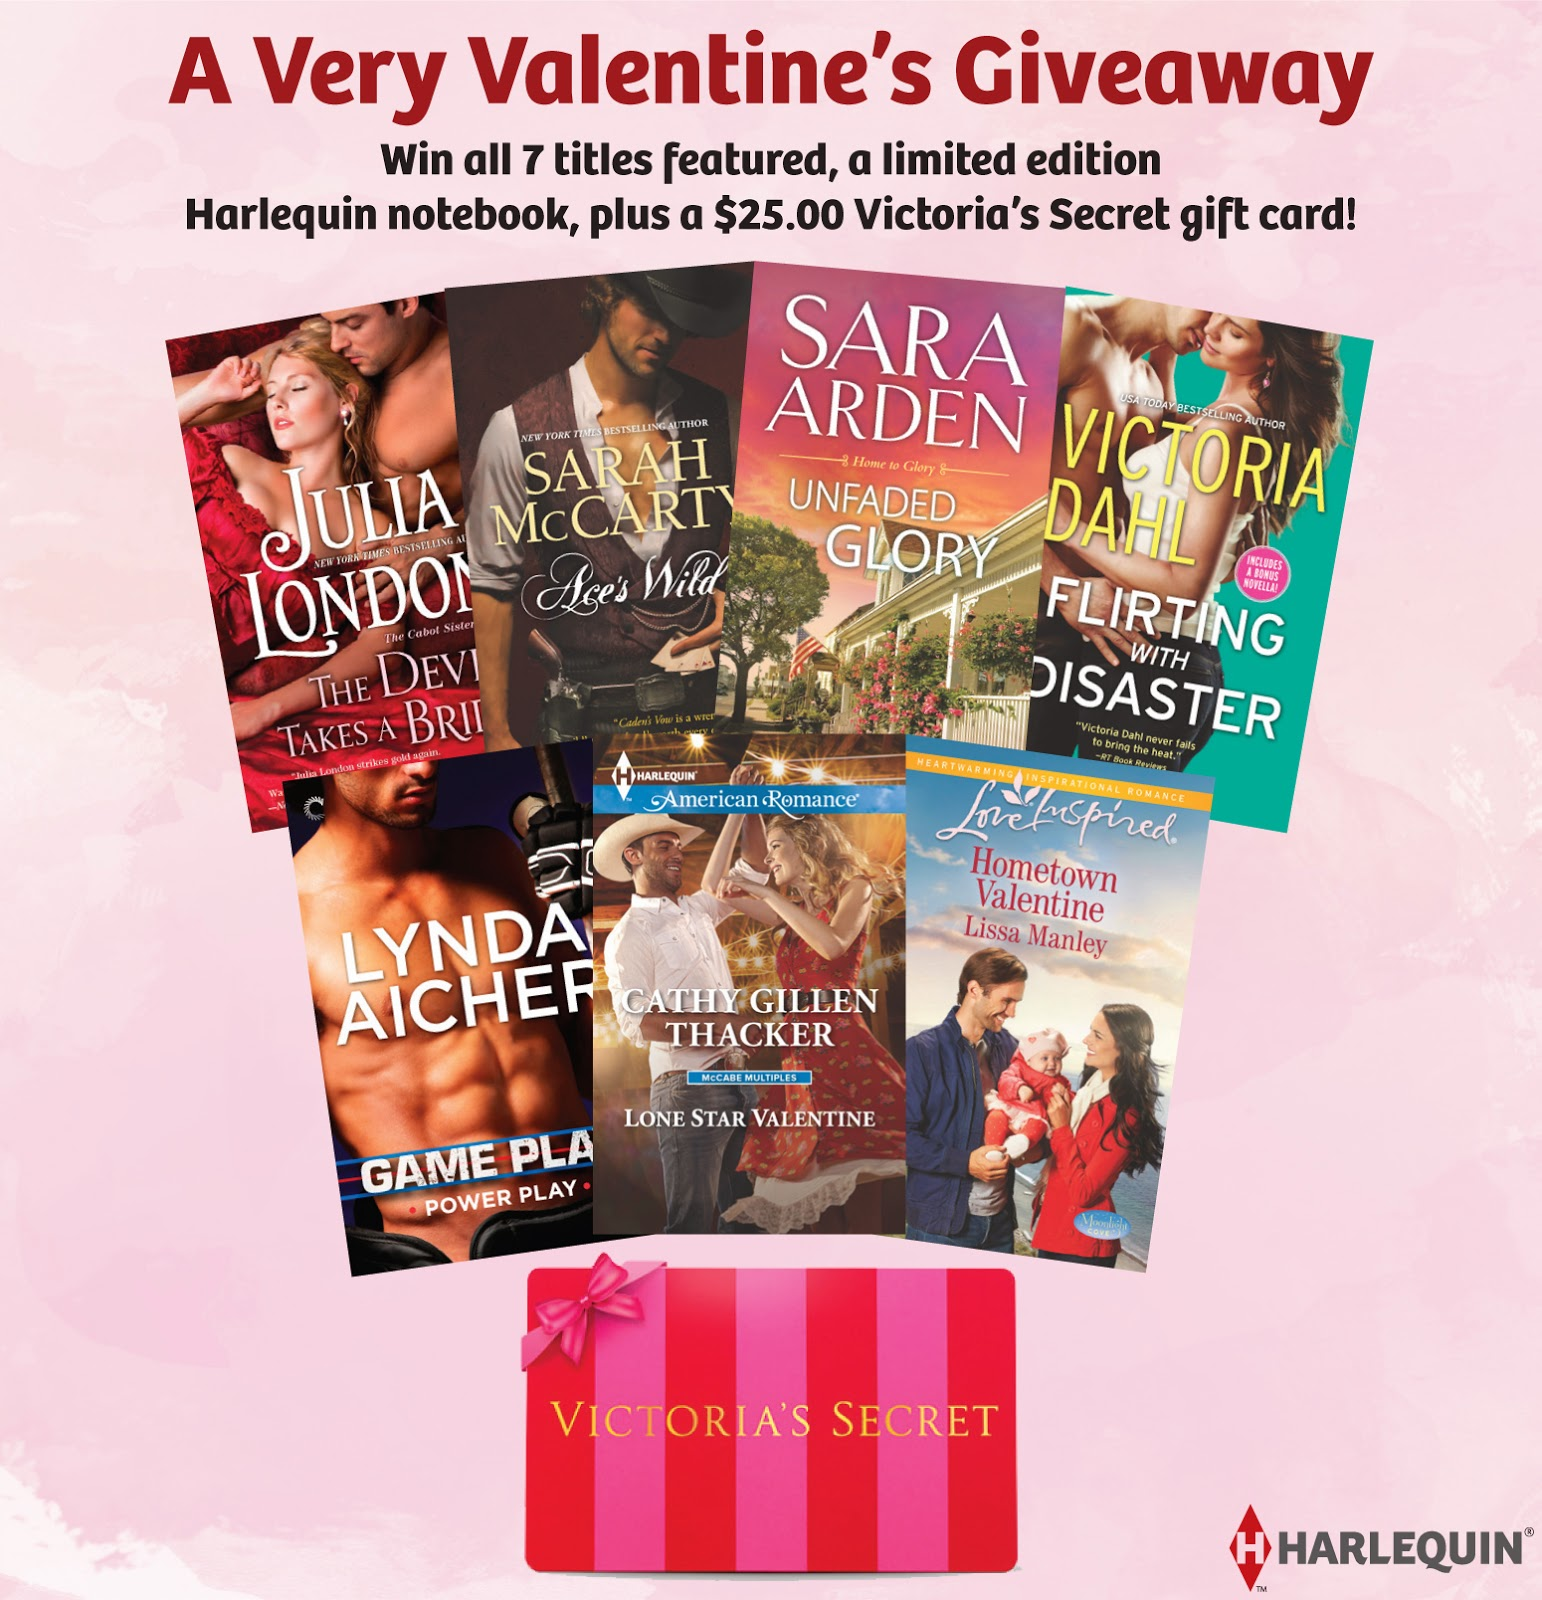 http://www.stuckinbooks.com/2015/01/a-very-valentines-giveaway-from.html